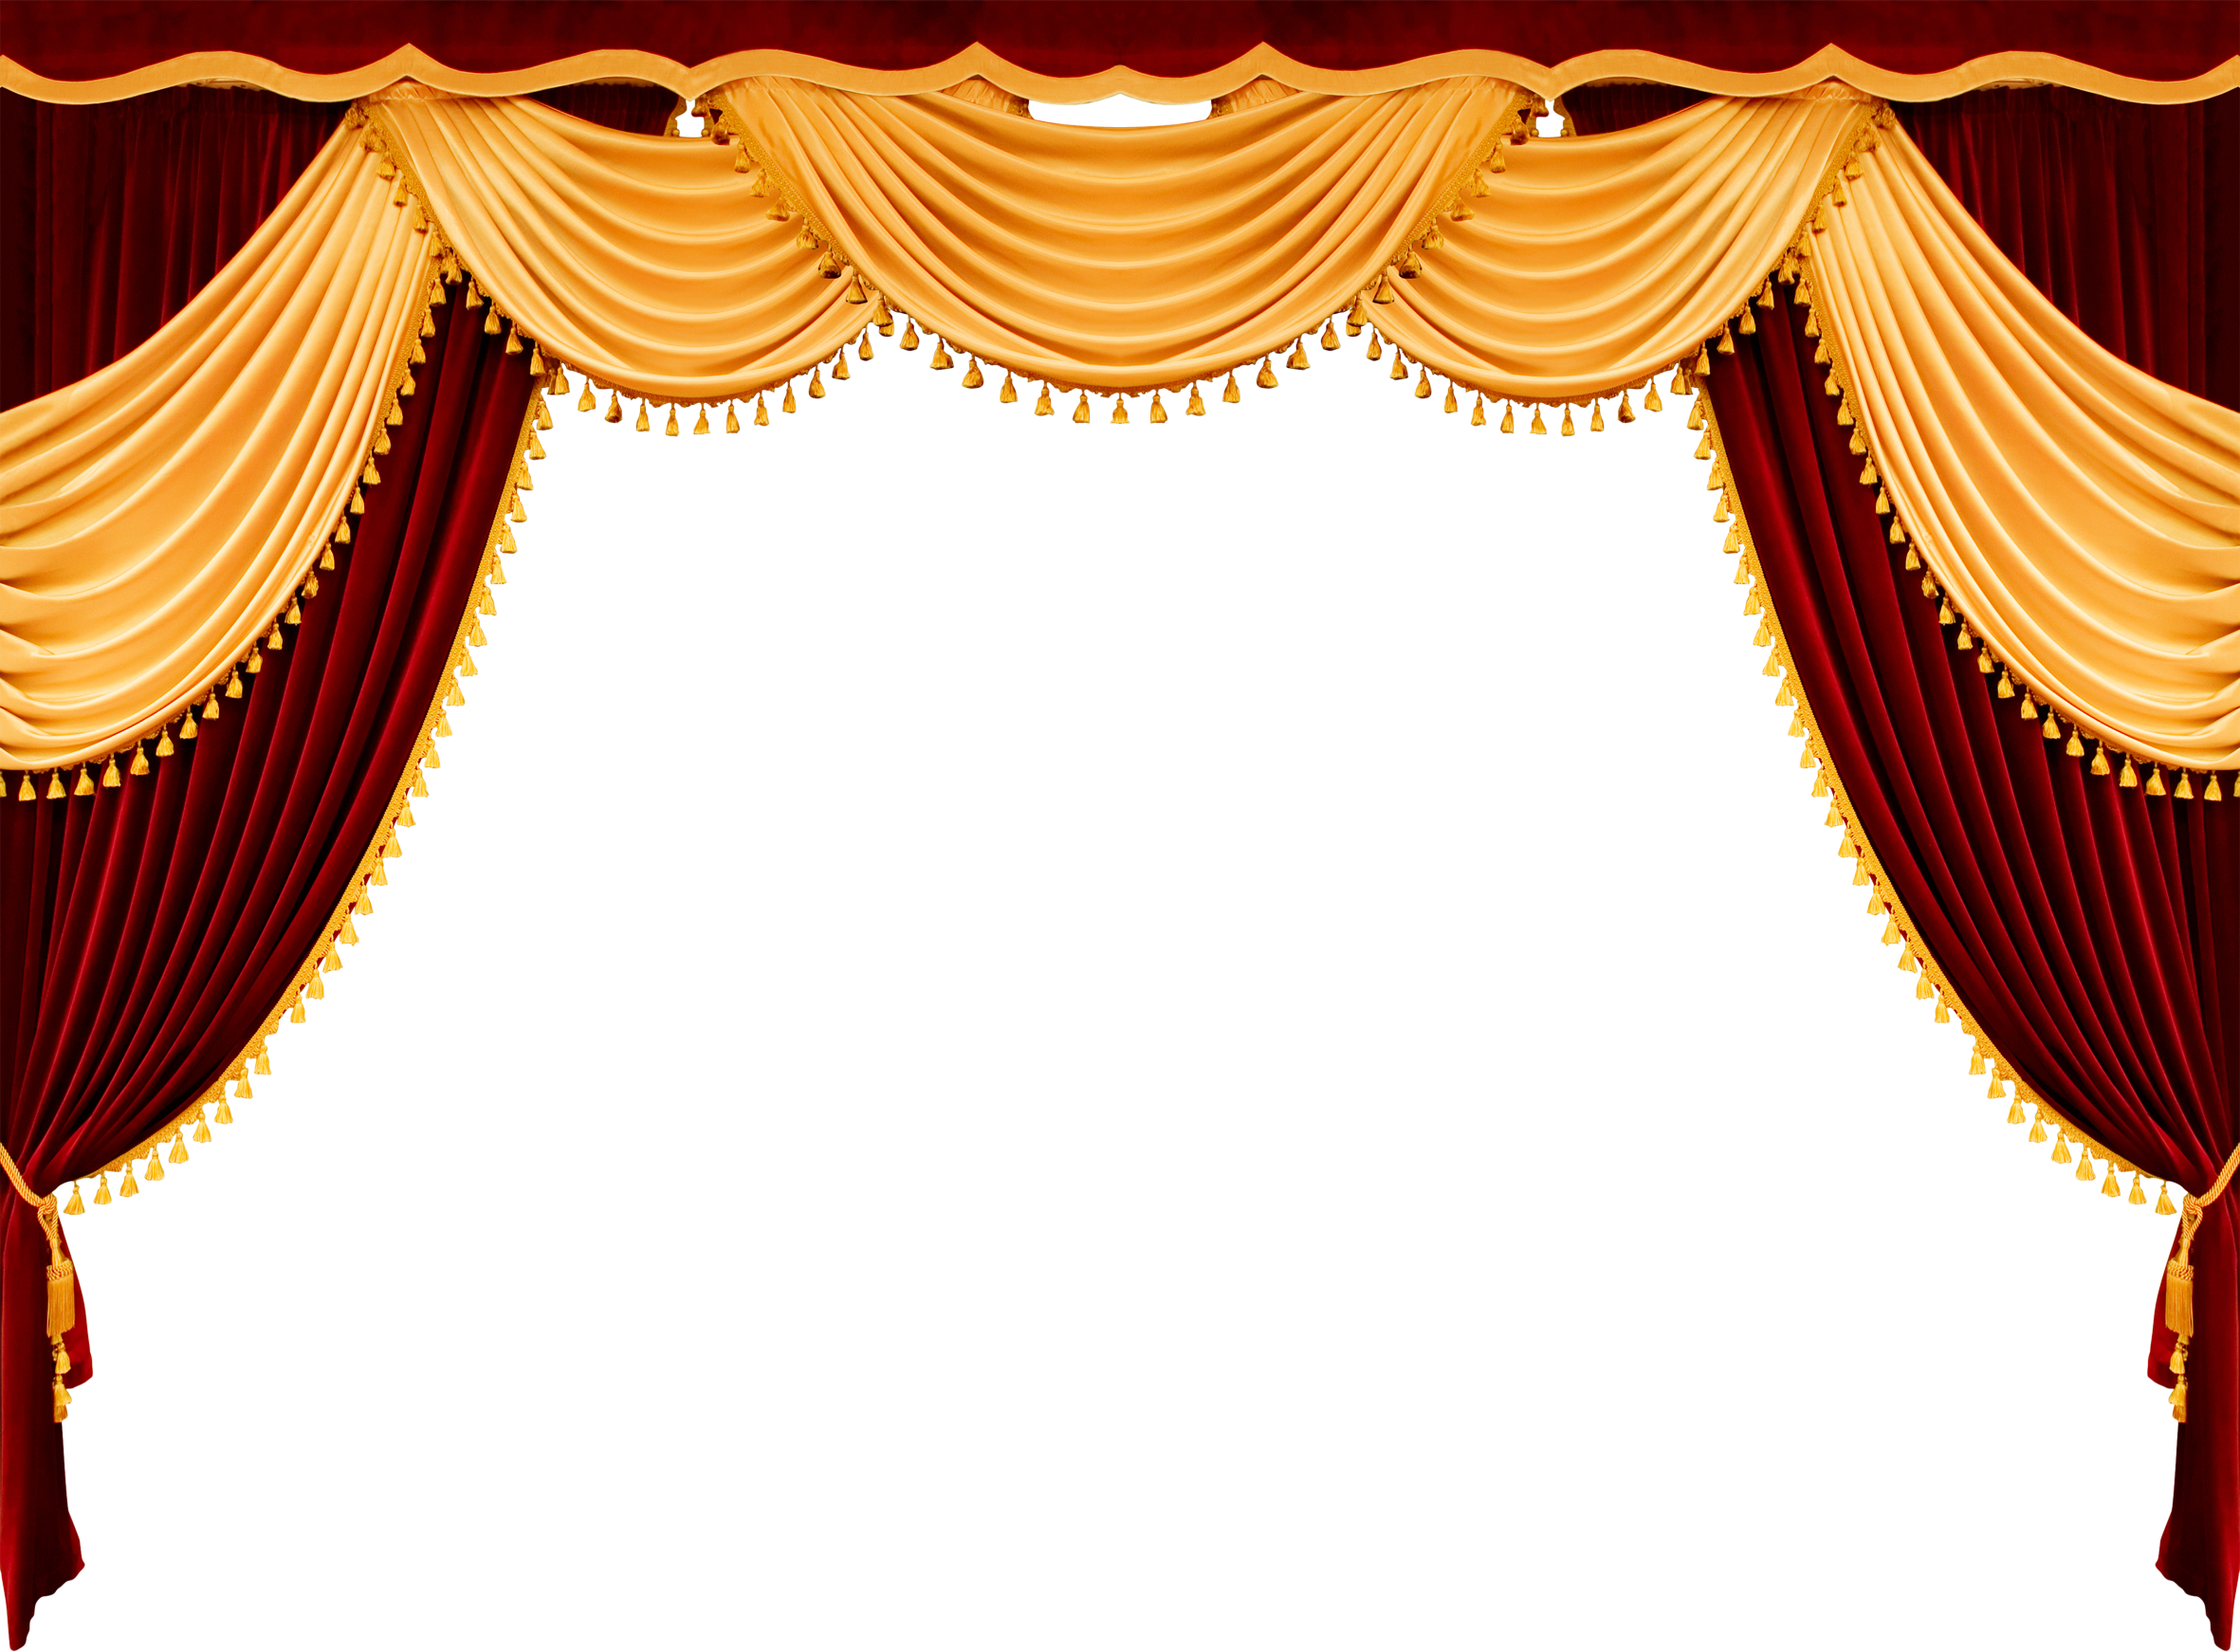 Png . Curtains clipart gold light